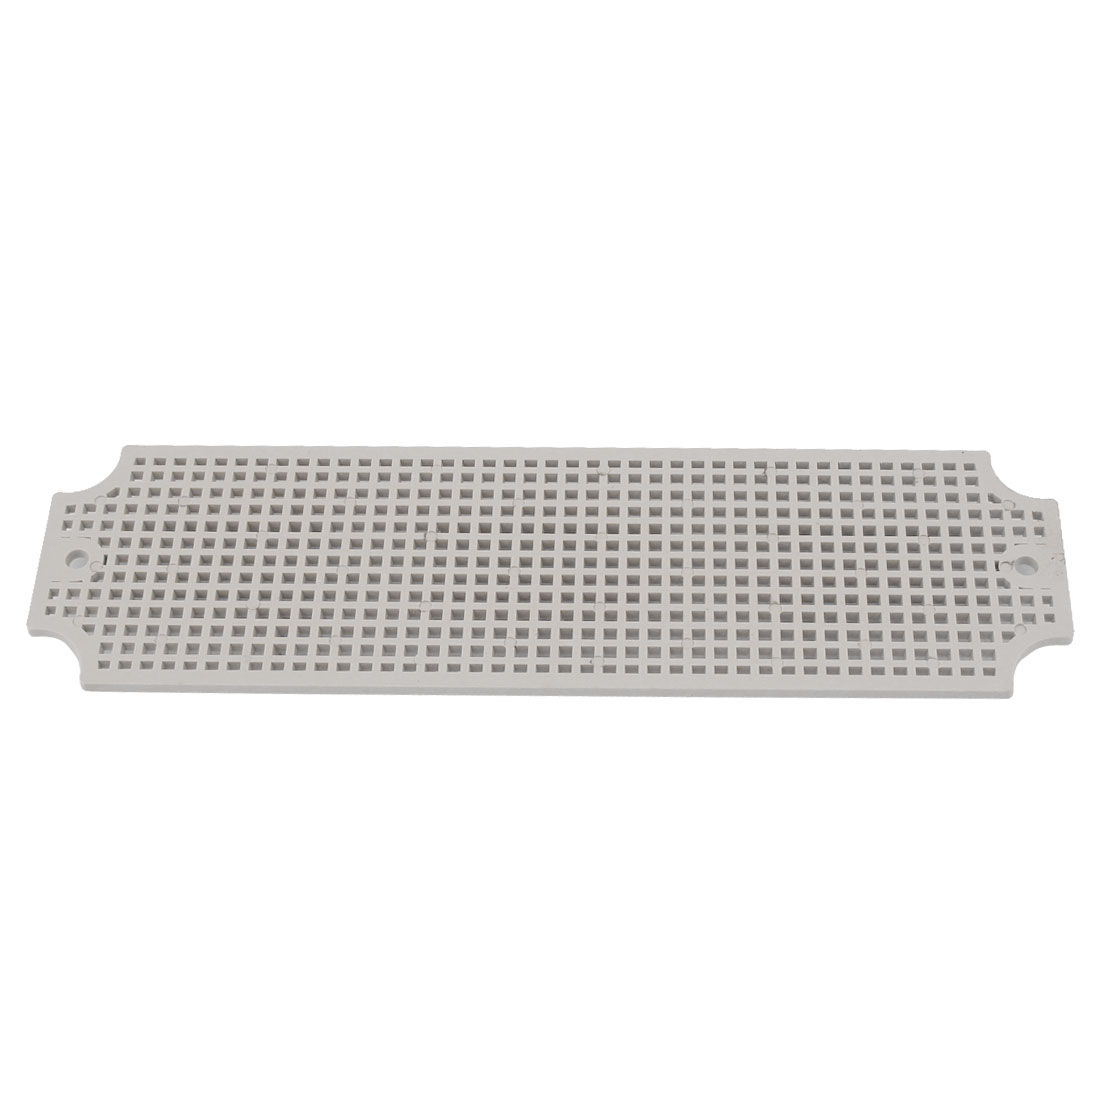 Gray Plastic Mesh Enclosure Mounting Plate for 250mm x 80mm Junction Box